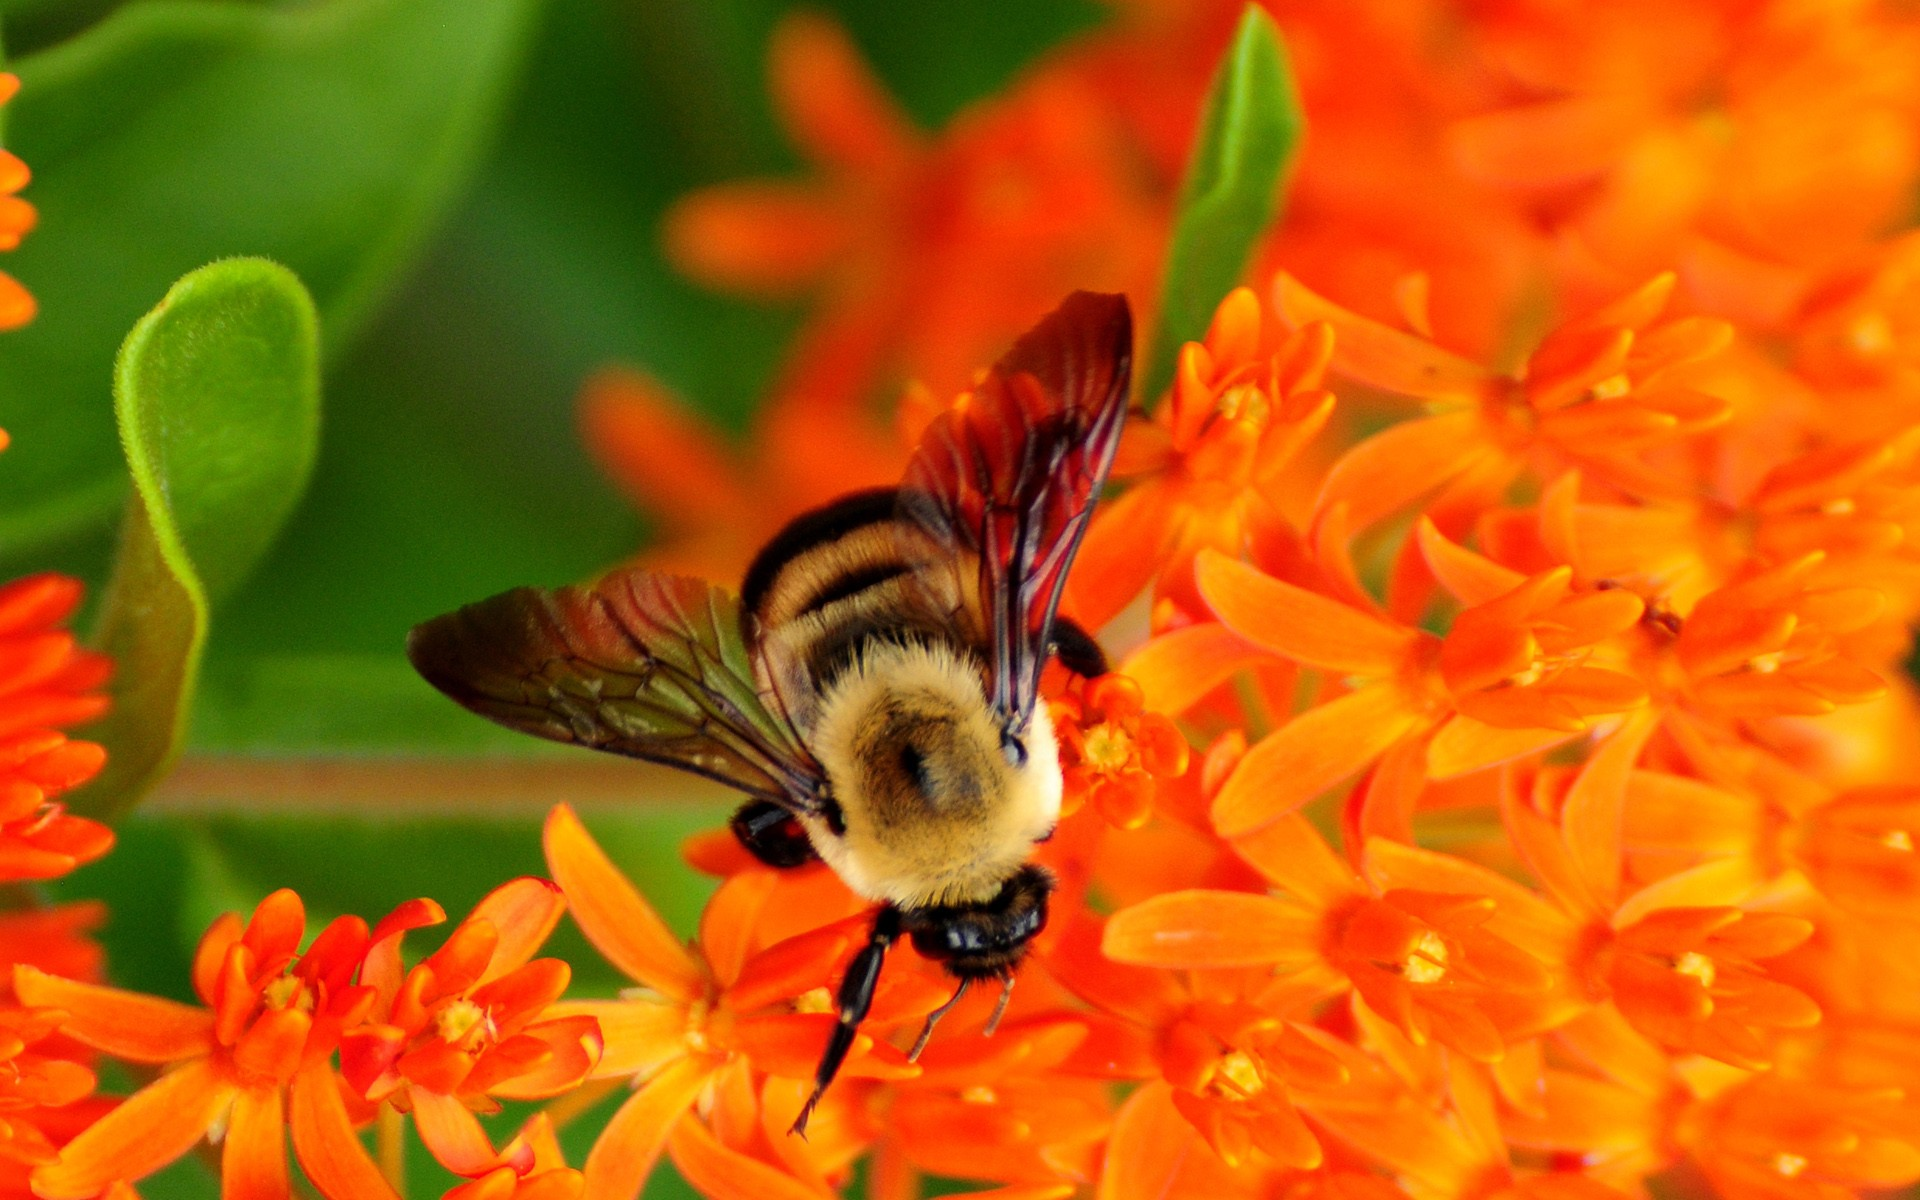 Image of bumble bees